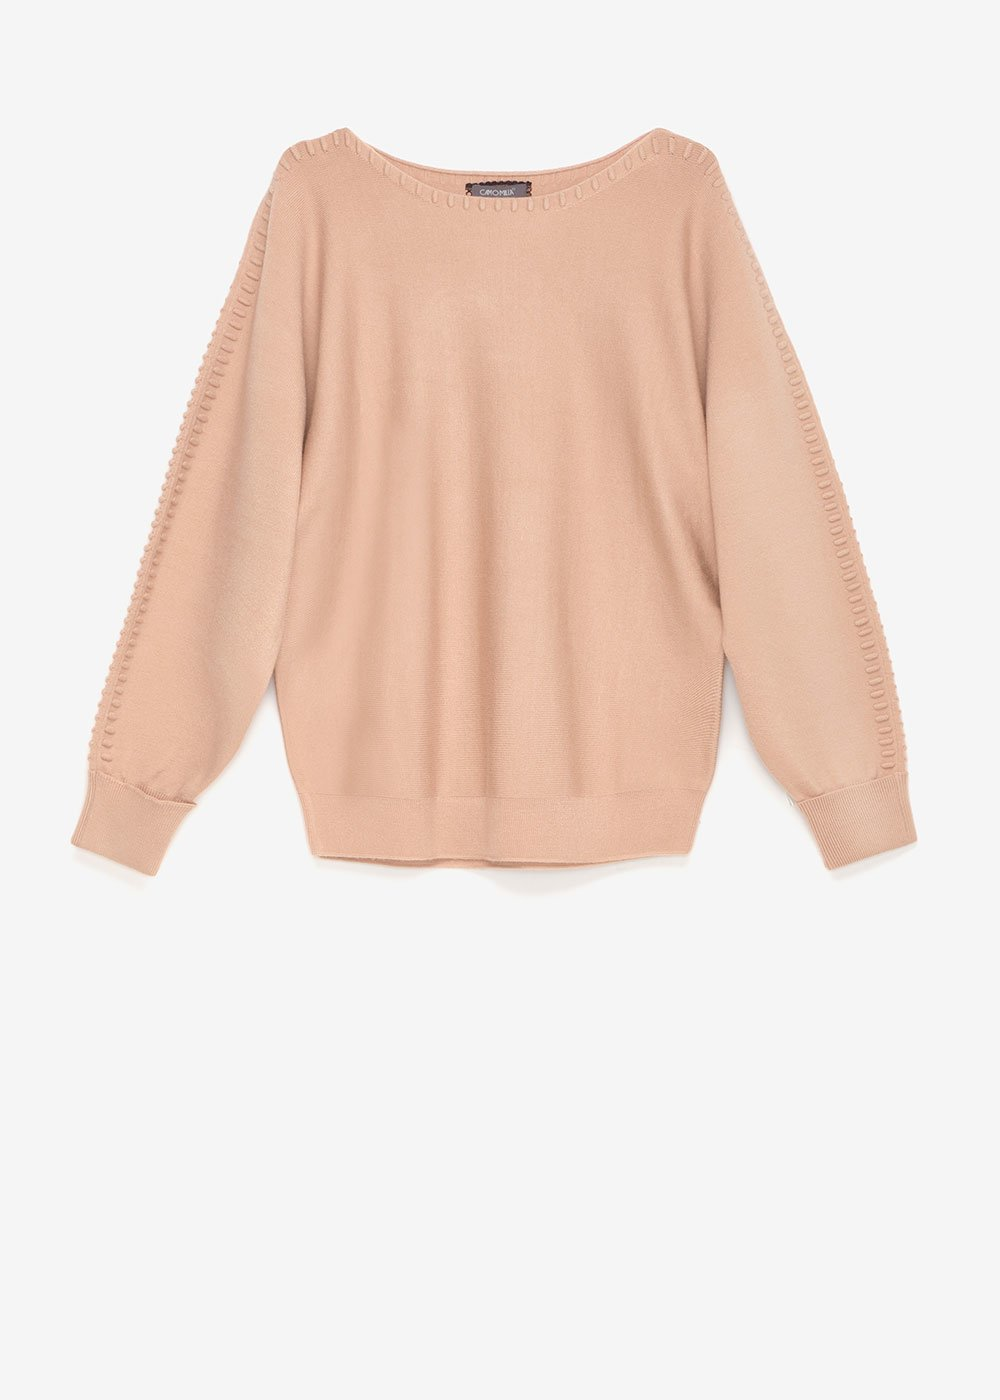 Margaret sweater with threading on the sleeves - Beige - Woman